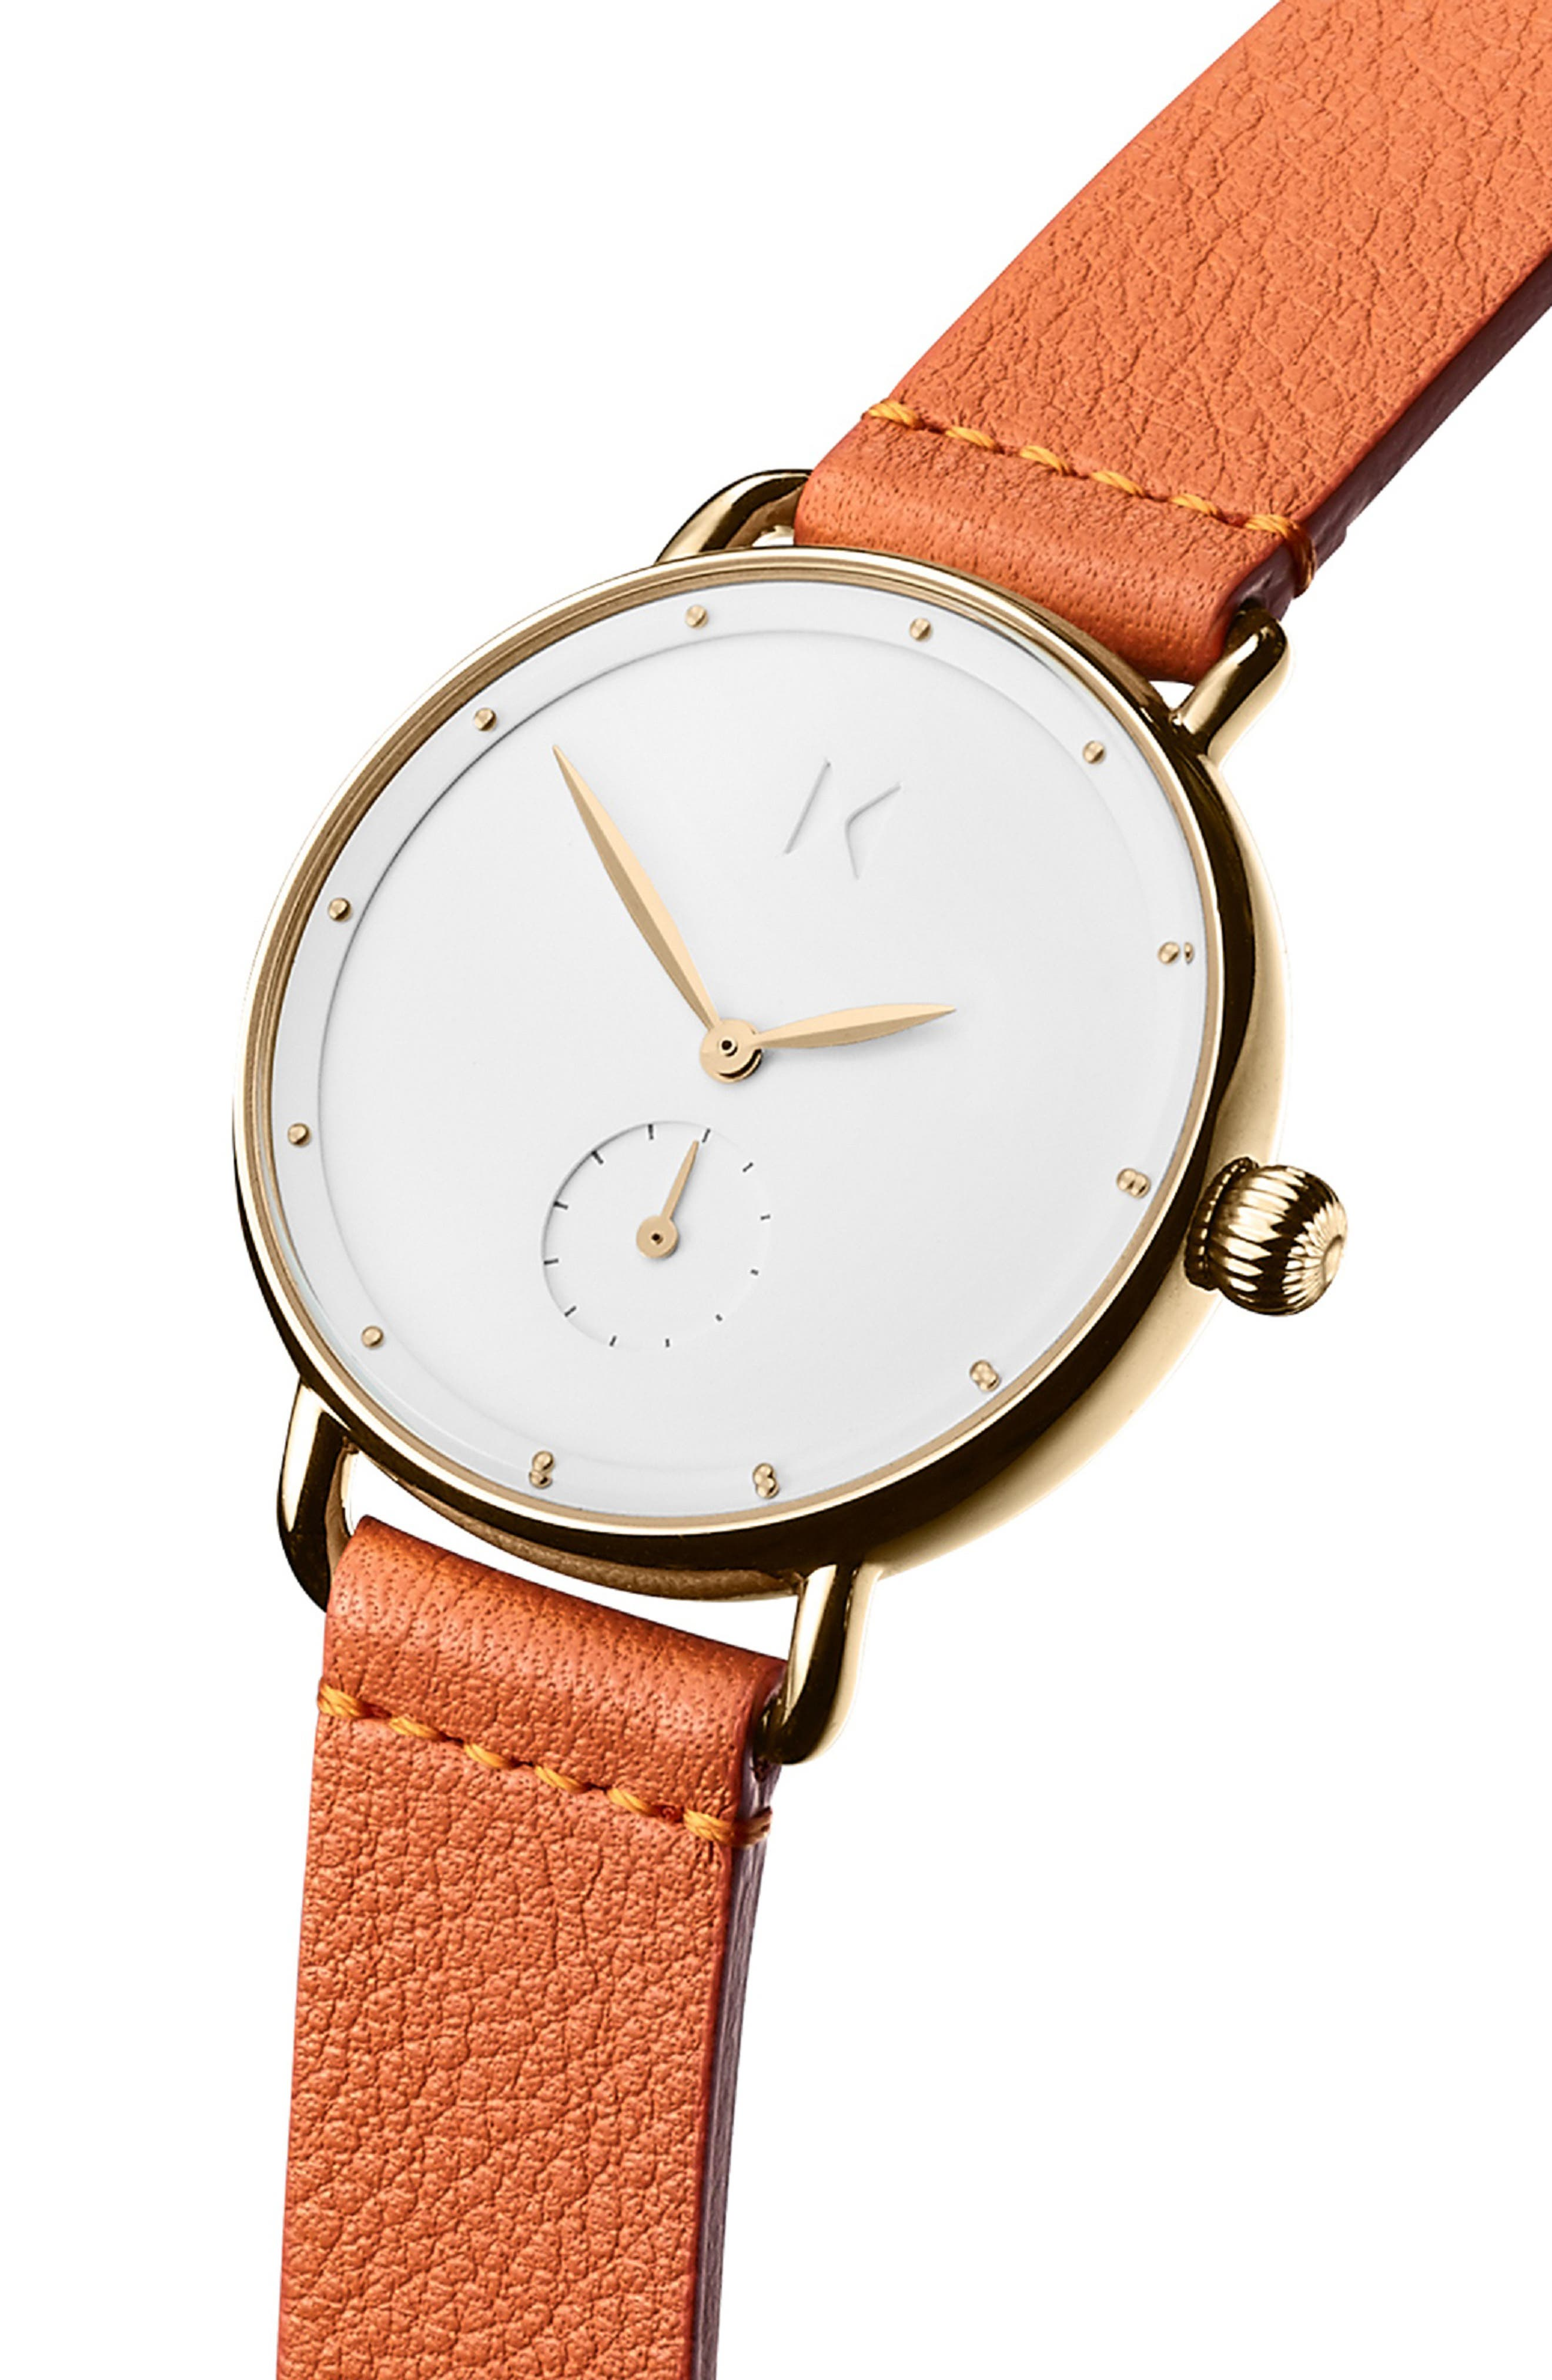 MVMT Bloom Leather Strap Watch, 36mm, Main, color, ORANGE/ WHITE/ GOLD